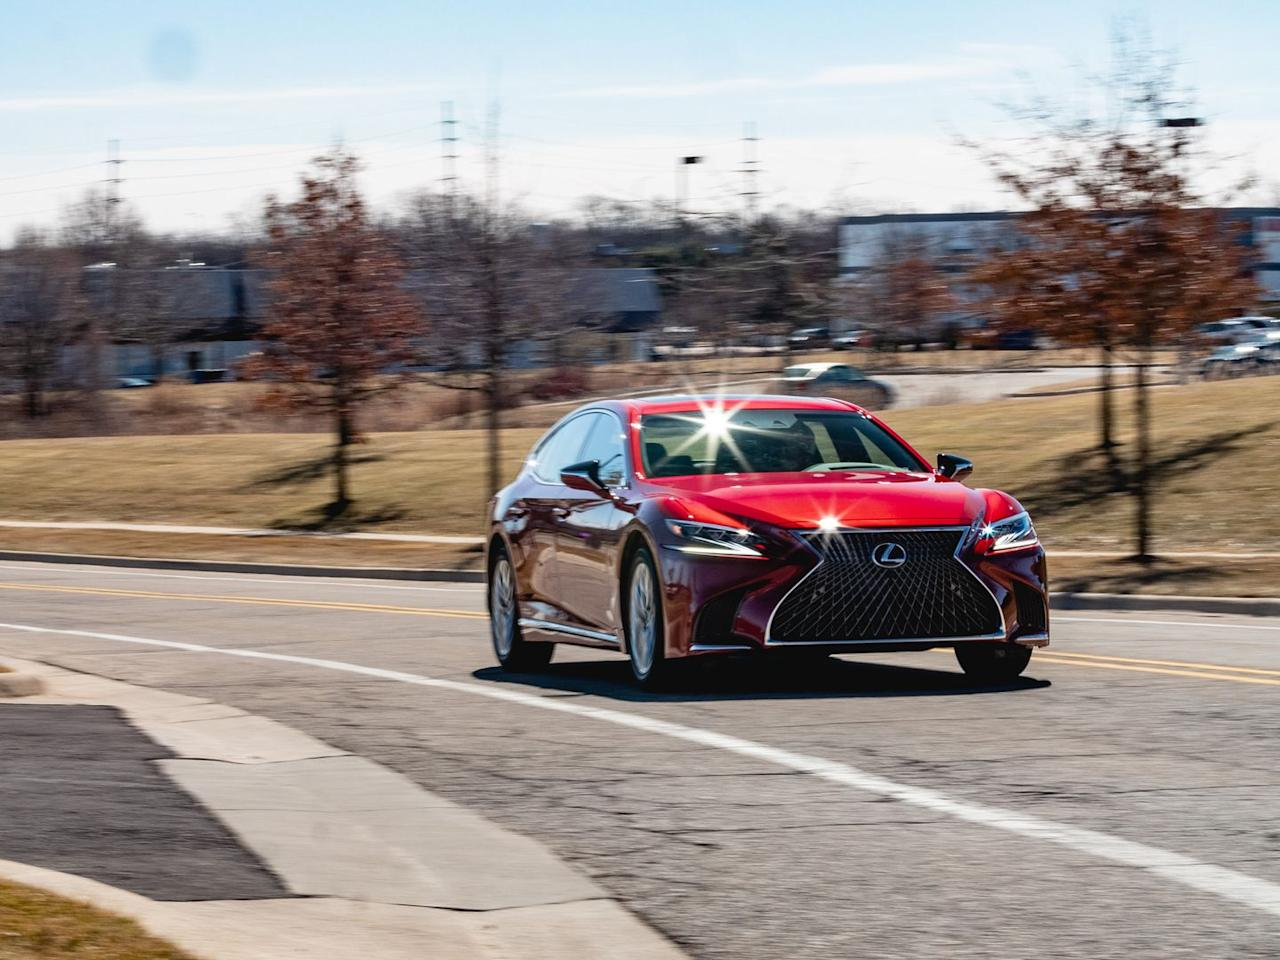 <p>The LS500h is the second generation of the hybrid LS sedan, which was all new for 2018. But we don't fault Lexus, and its parent company, Toyota, for pursuing efficiency, even when its priorities might seem misplaced.</p>